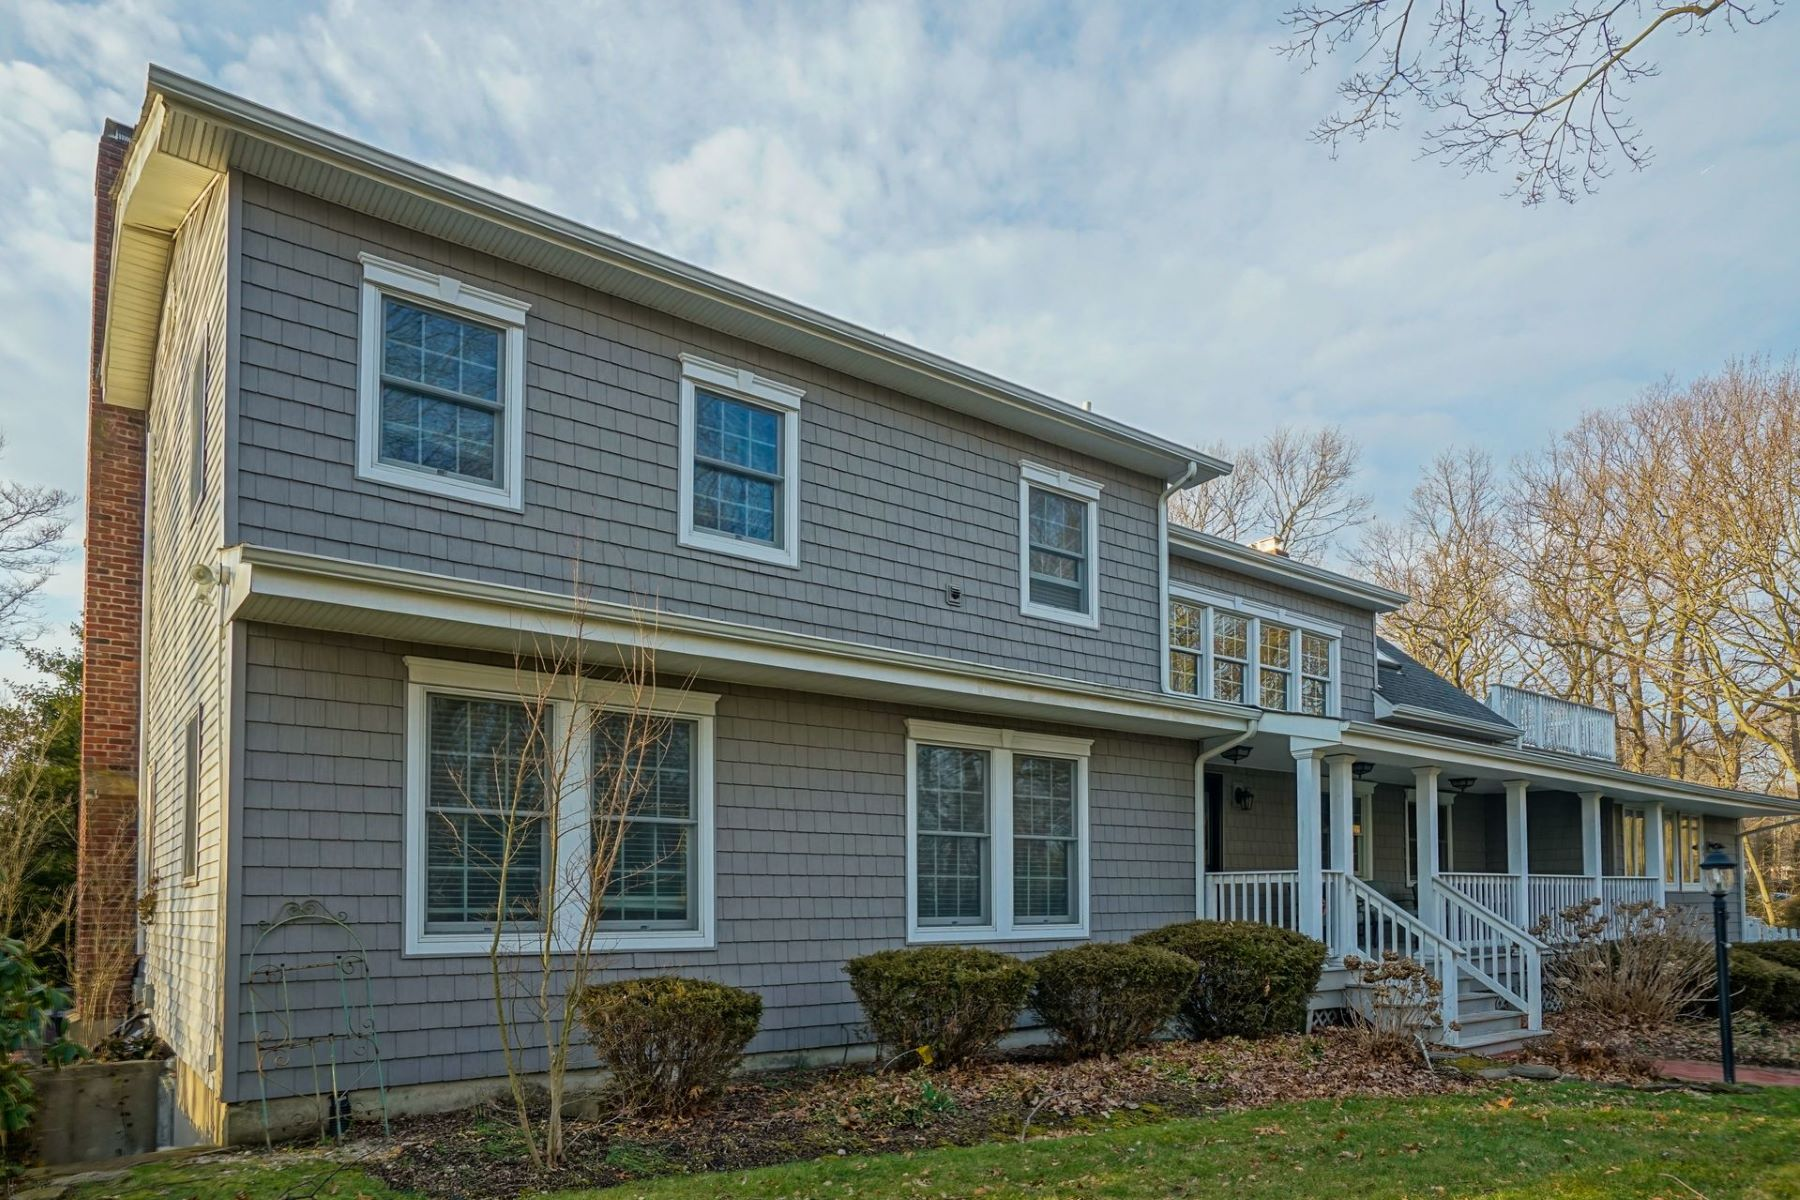 Single Family Home for Sale at 4 Westview Ave , Port Jefferson, NY 11777 4 Westview Ave, Port Jefferson, New York, 11777 United States